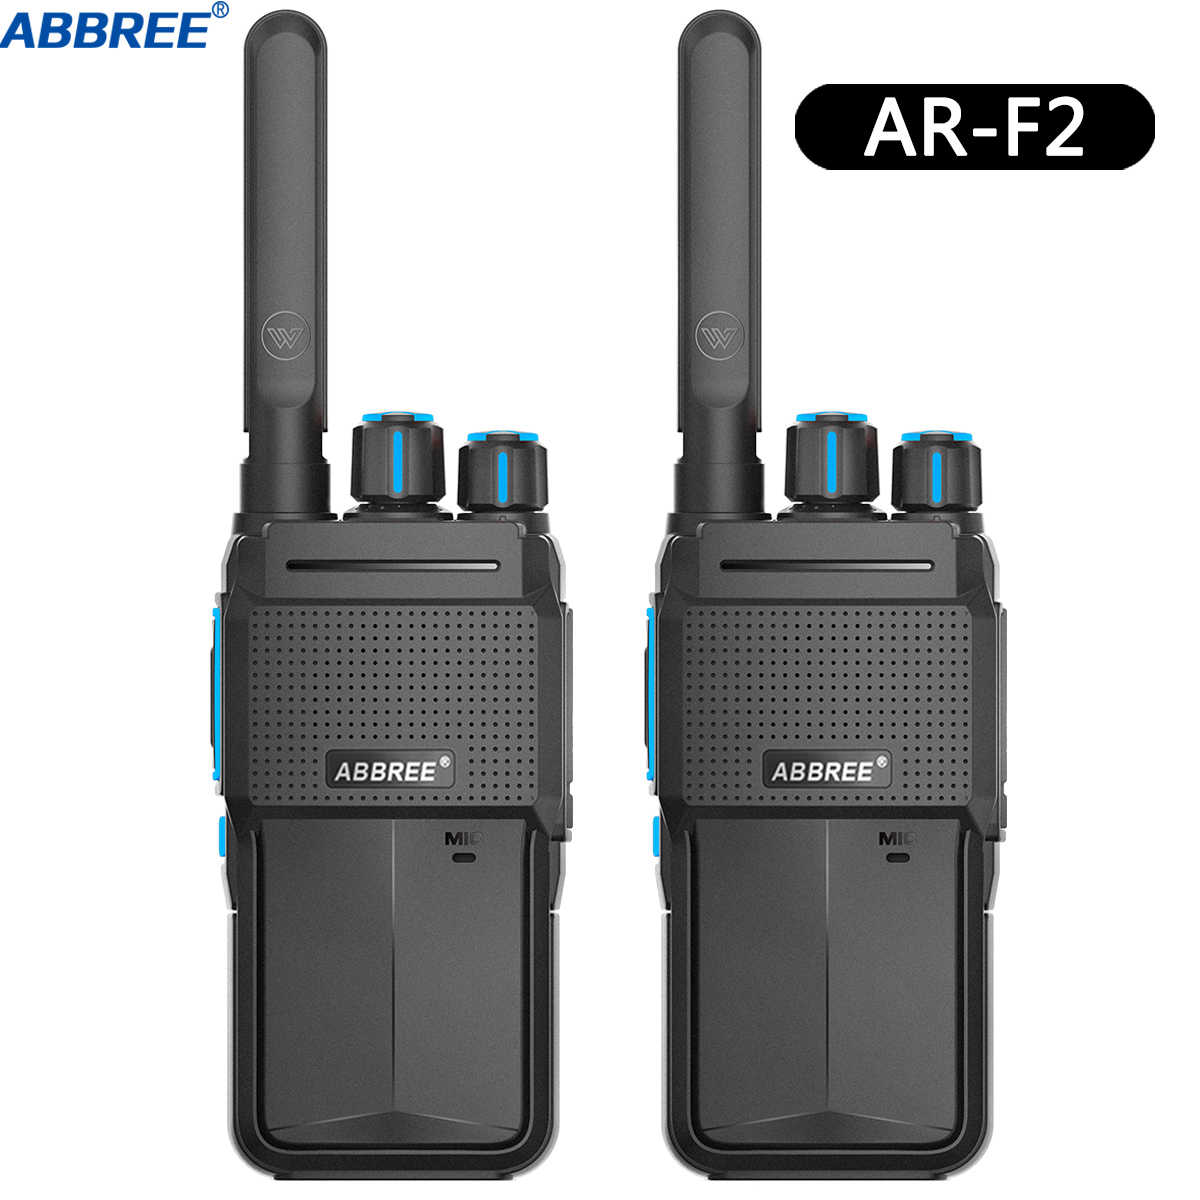 2 pièces ABBREE AR-F2 Mini talkie-walkie Radio communicateur 400-470MHz bande UHF portable wln KD-C1 kdc1 Radio 2 voies